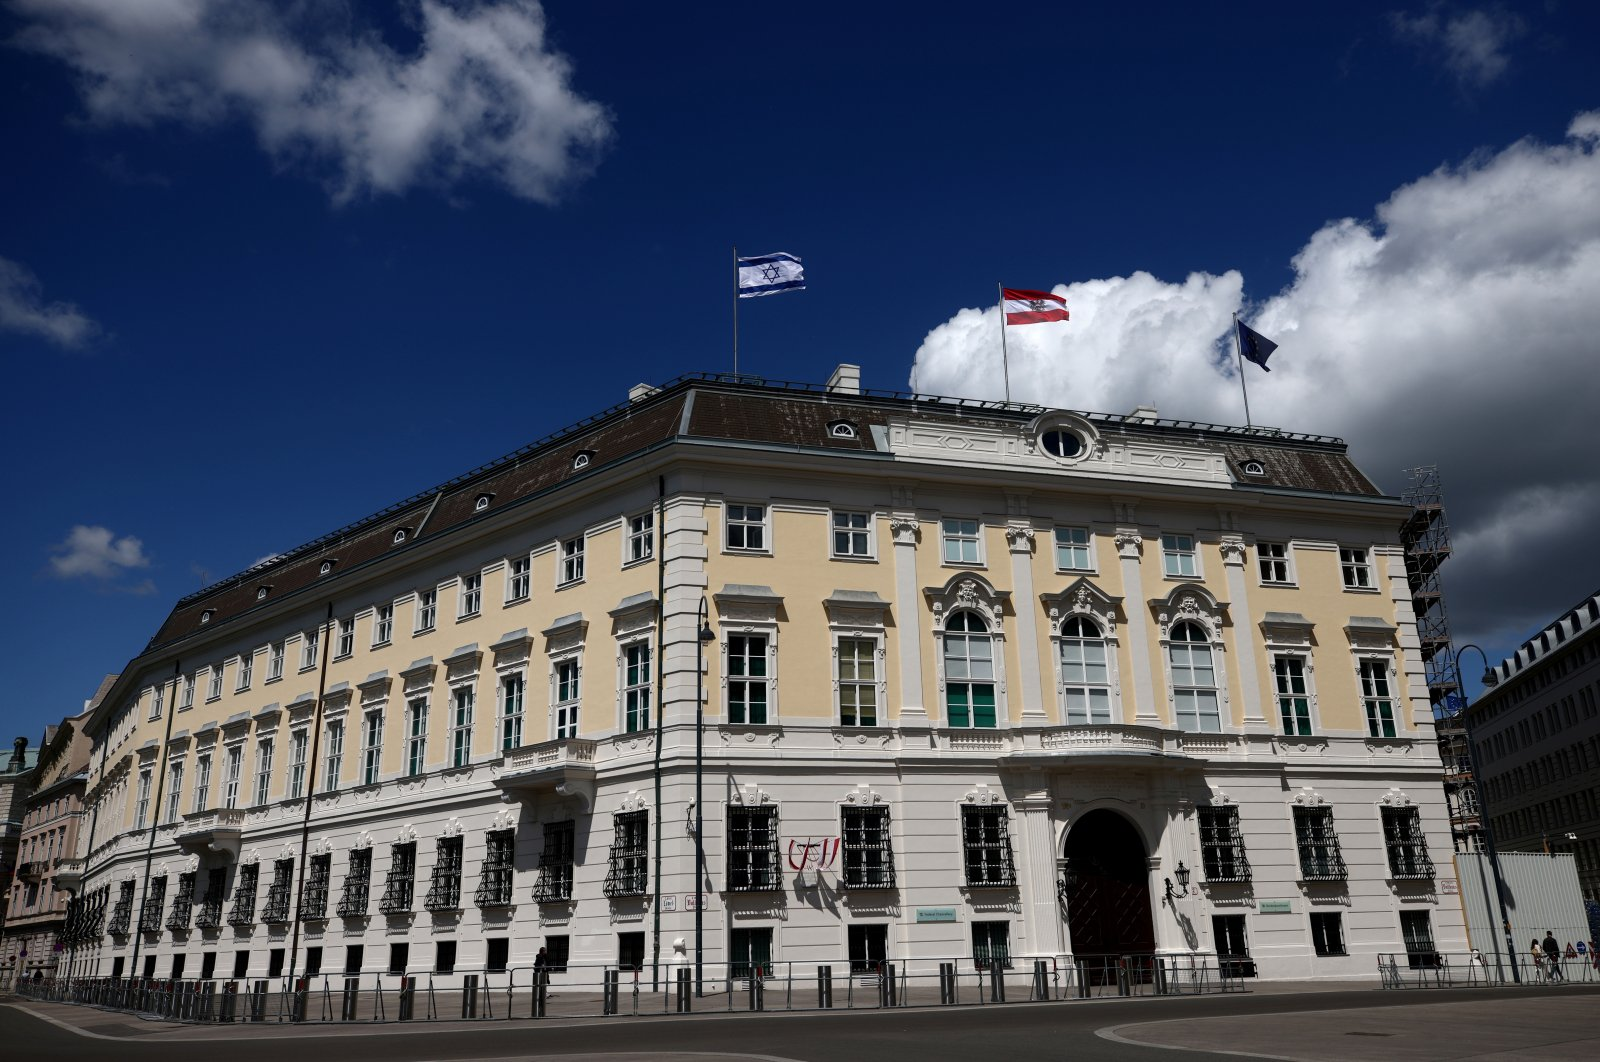 Israel and Austria's national flags are displayed atop the federal chancellery in Vienna, Austria, May 16, 2021. (REUTERS Photo)